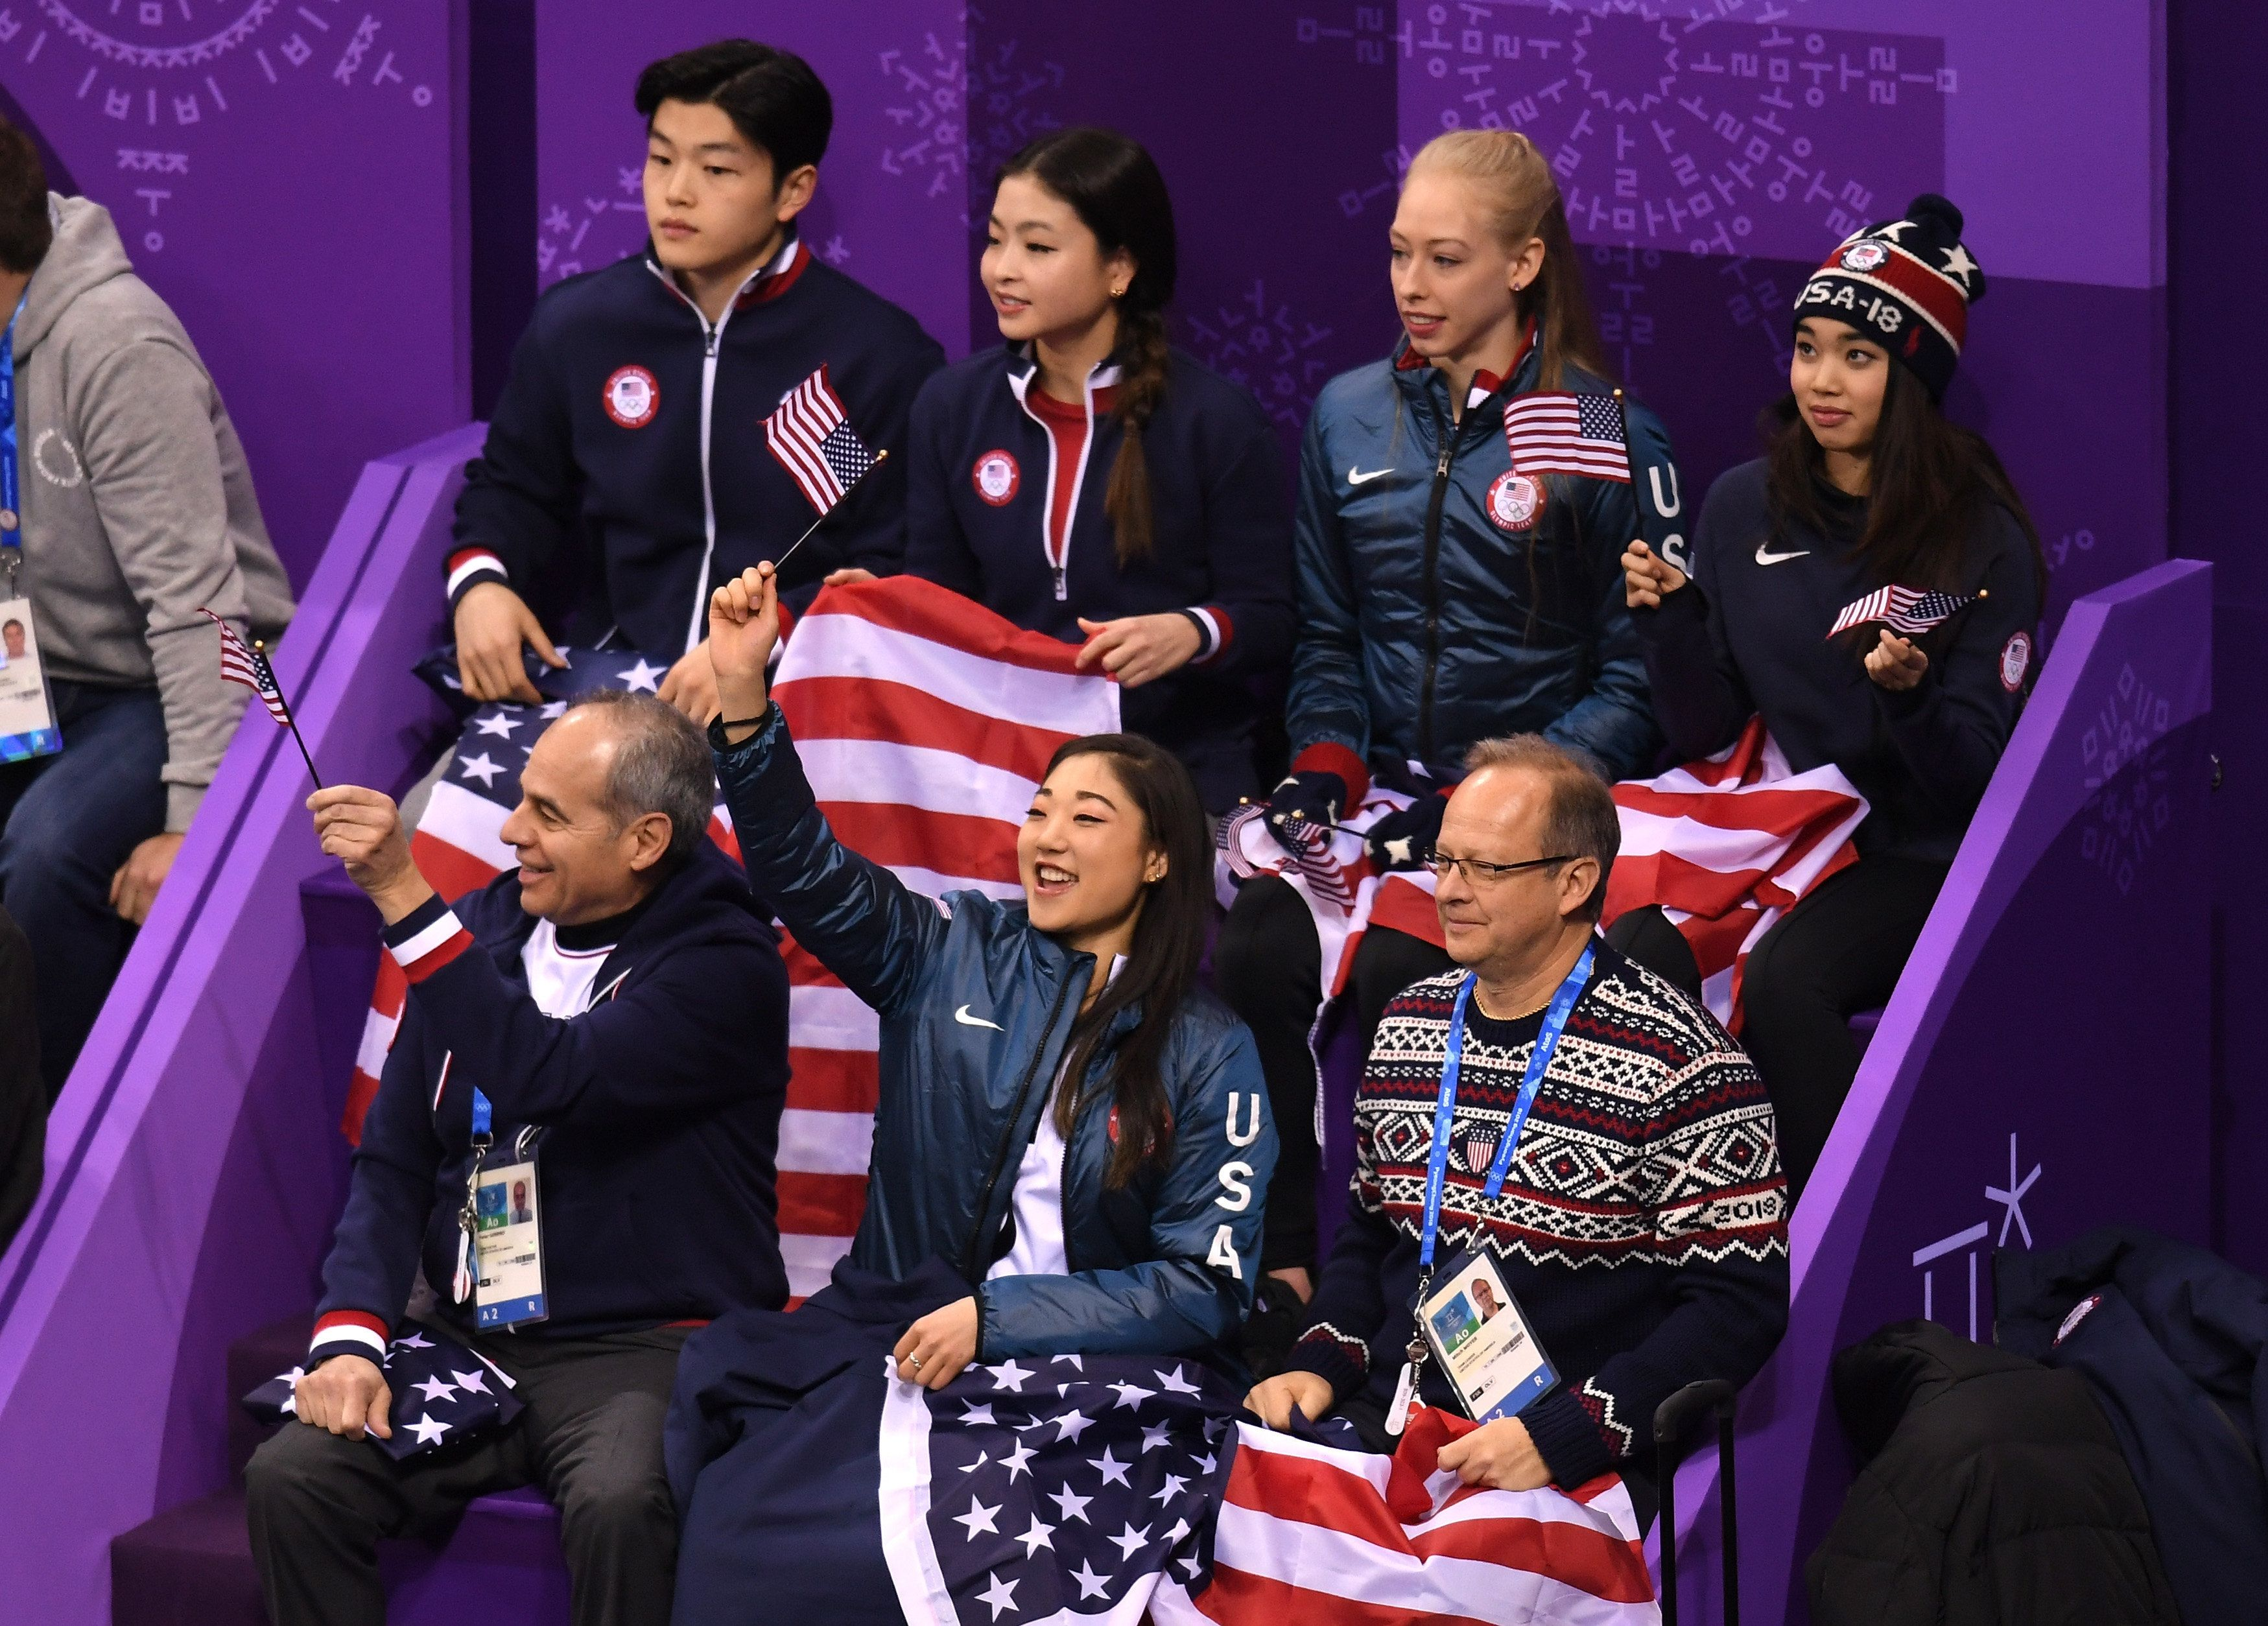 GANGNEUNG, SOUTH KOREA - FEBRUARY 09:  United States team members cheer for Nathan Chen in the Figure Skating Team Event - Men's Single Skating Short Program during the PyeongChang 2018 Winter Olympic Games at Gangneung Ice Arena on February 9, 2018 in Gangneung, South Korea.  (Photo by Harry How/Getty Images)